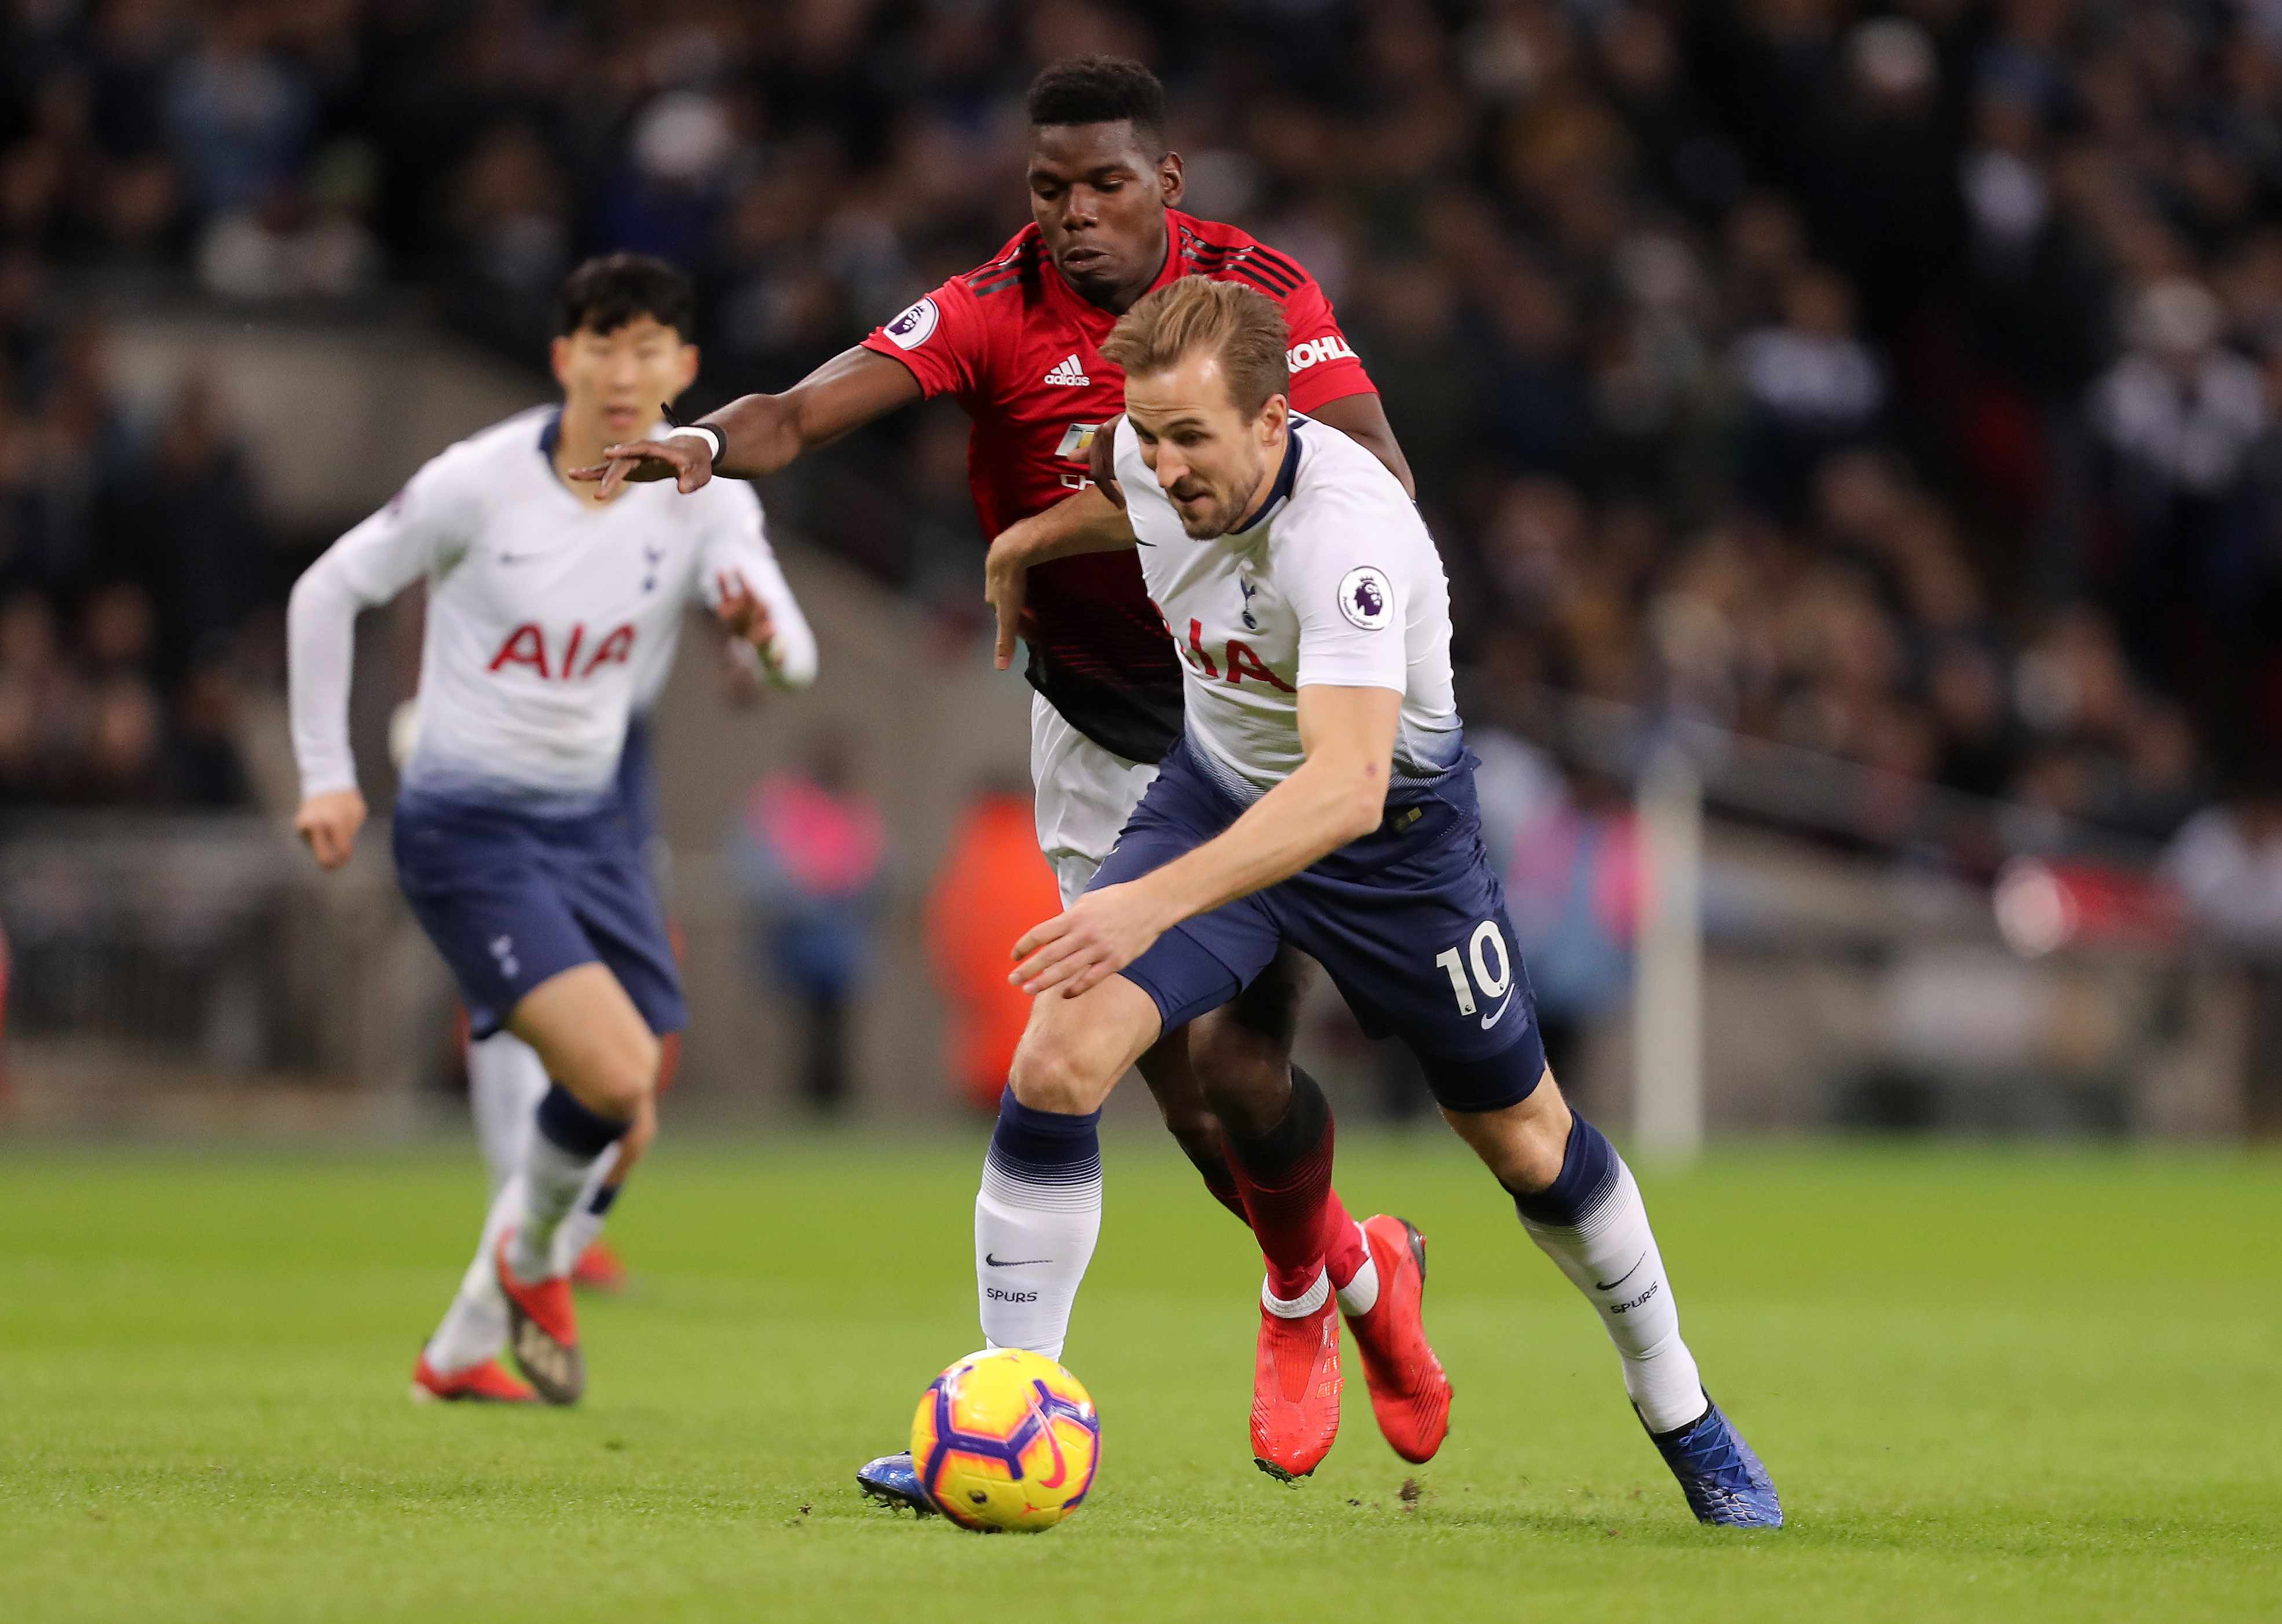 LONDON, ENGLAND - JANUARY 13: Harry Kane of Tottenham Hotspur is challenged by Paul Pogba of Manchester United during the Premier League match between Tottenham Hotspur and Manchester United at Wembley Stadium on January 13, 2019 in London, United Kingdom. (Photo by Tottenham Hotspur FC/Tottenham Hotspur FC via Getty Images)